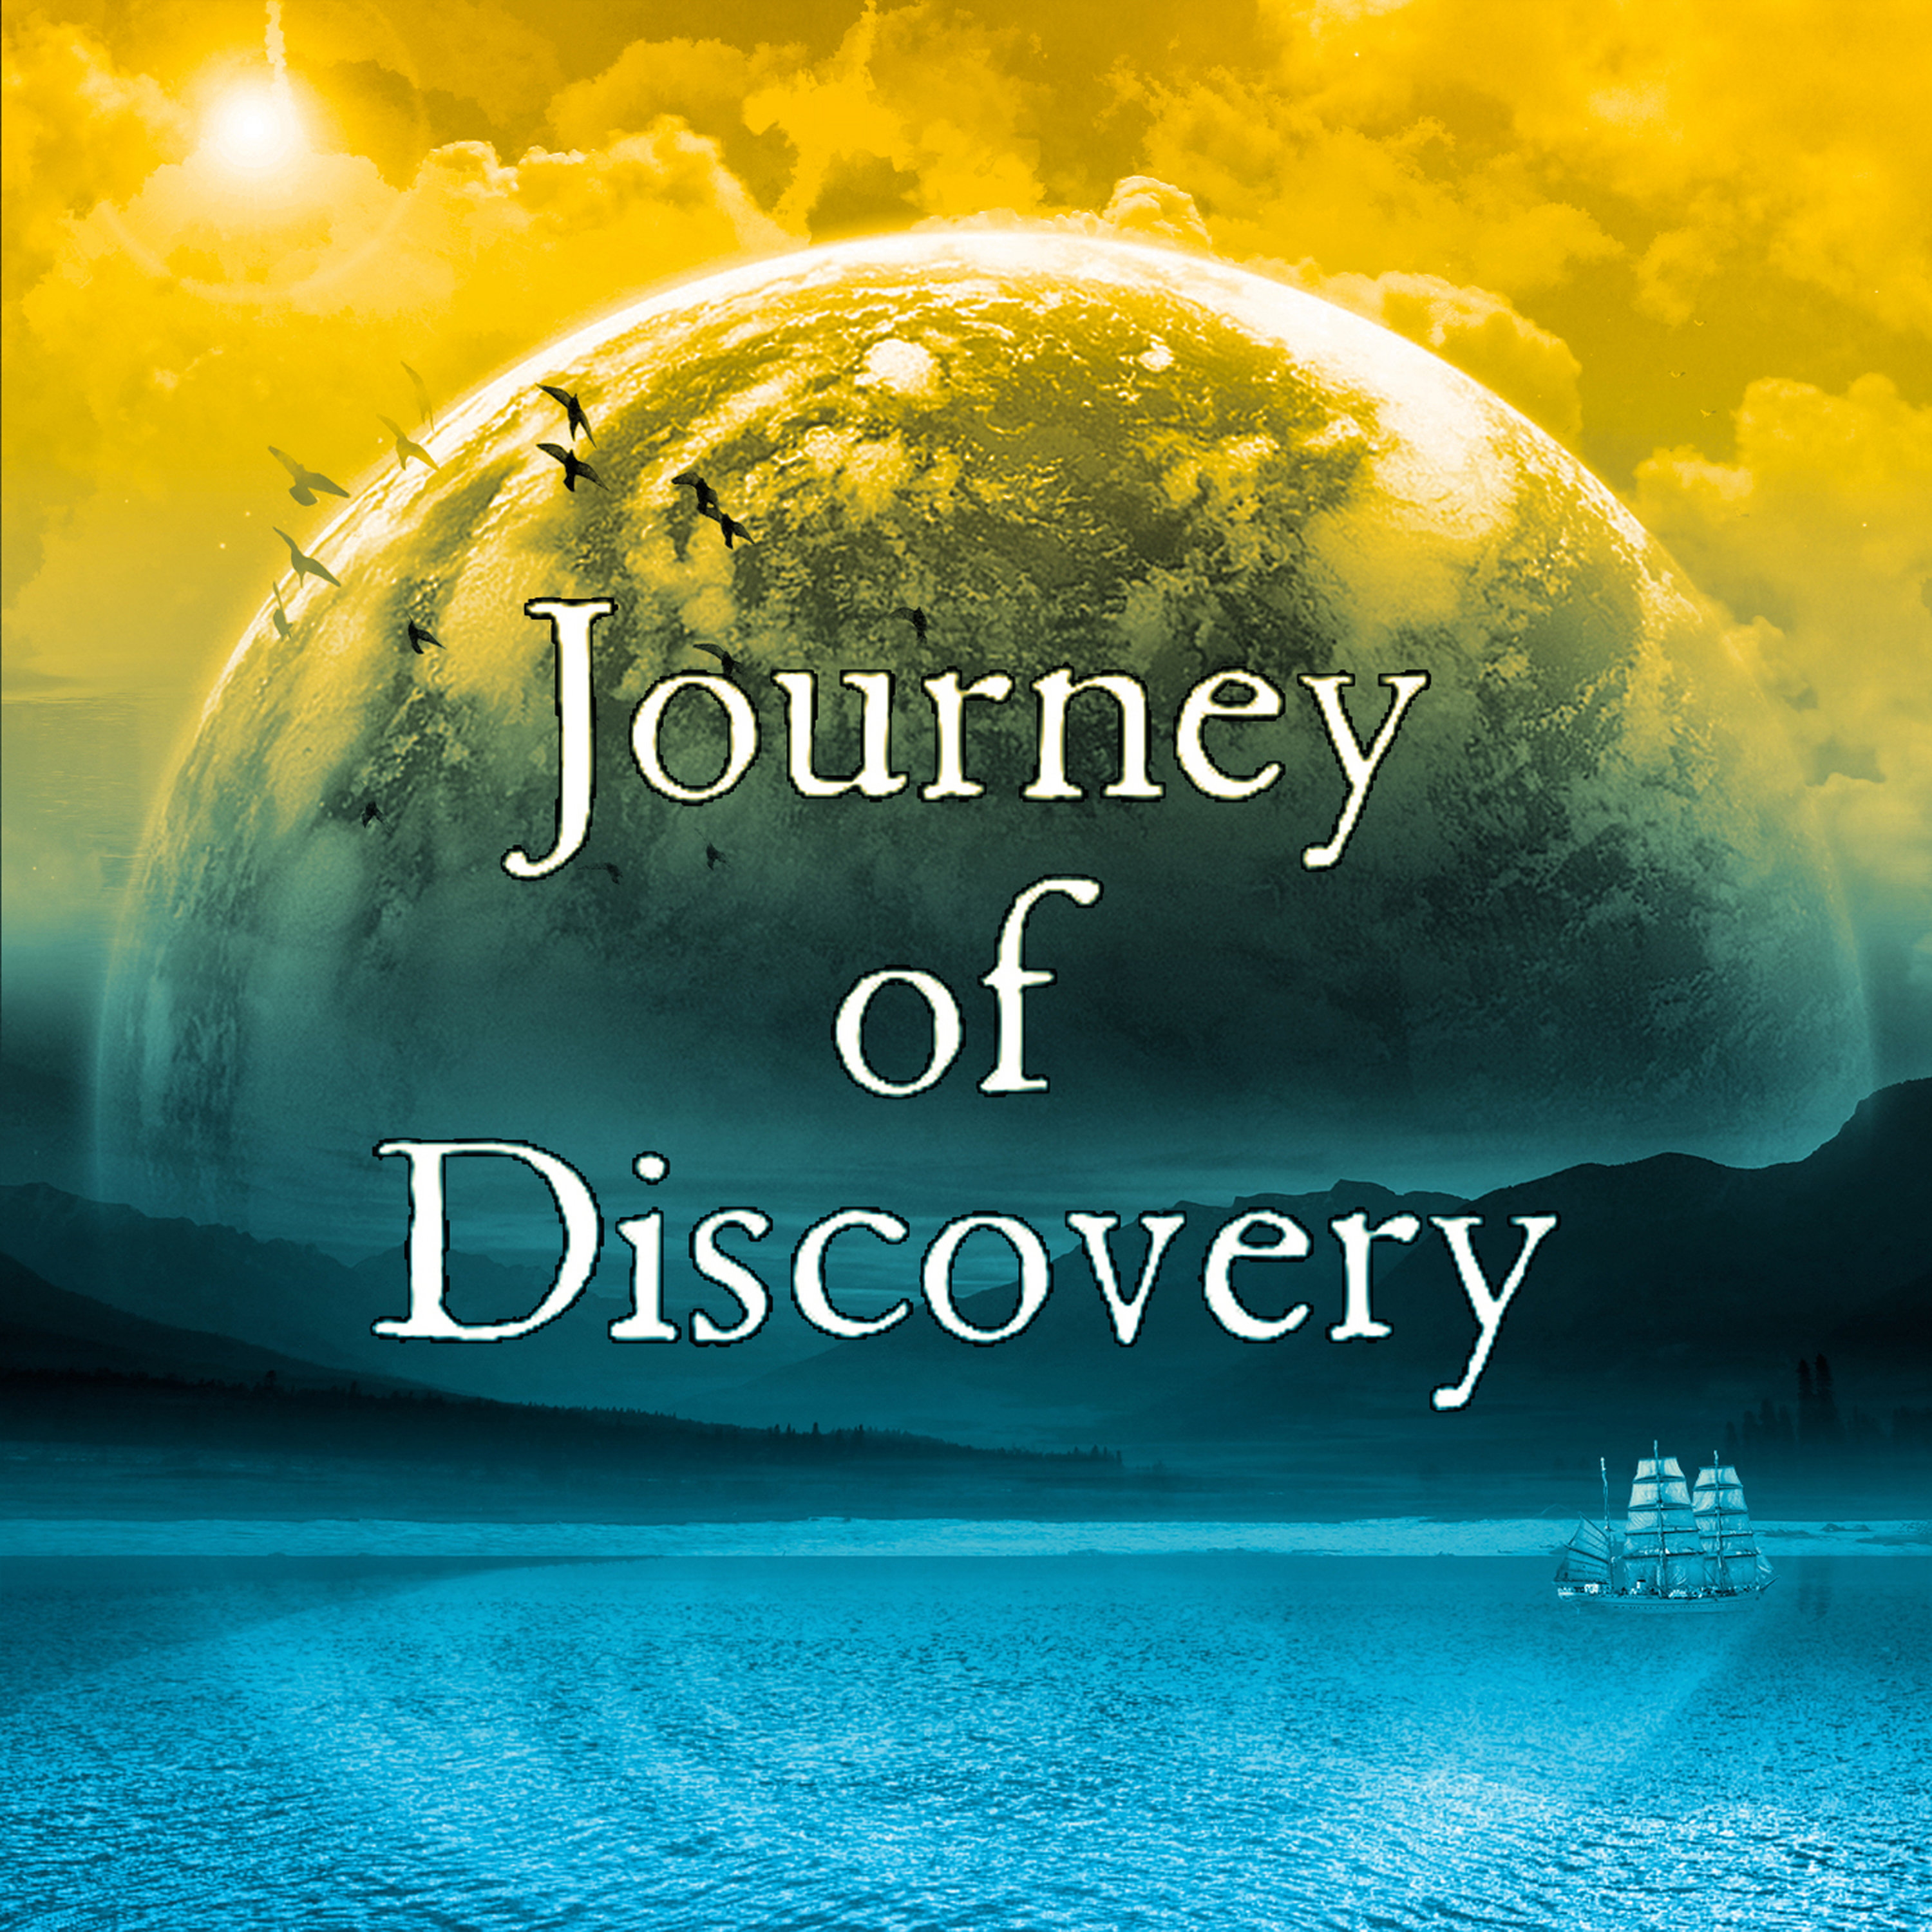 journey of discovery Looking back now over the past 12 or 13 years since i had my mitochondrial dna first tested and discovered i was a member of haplogroup j, i've realized what a journey of discovery i've been on literally.